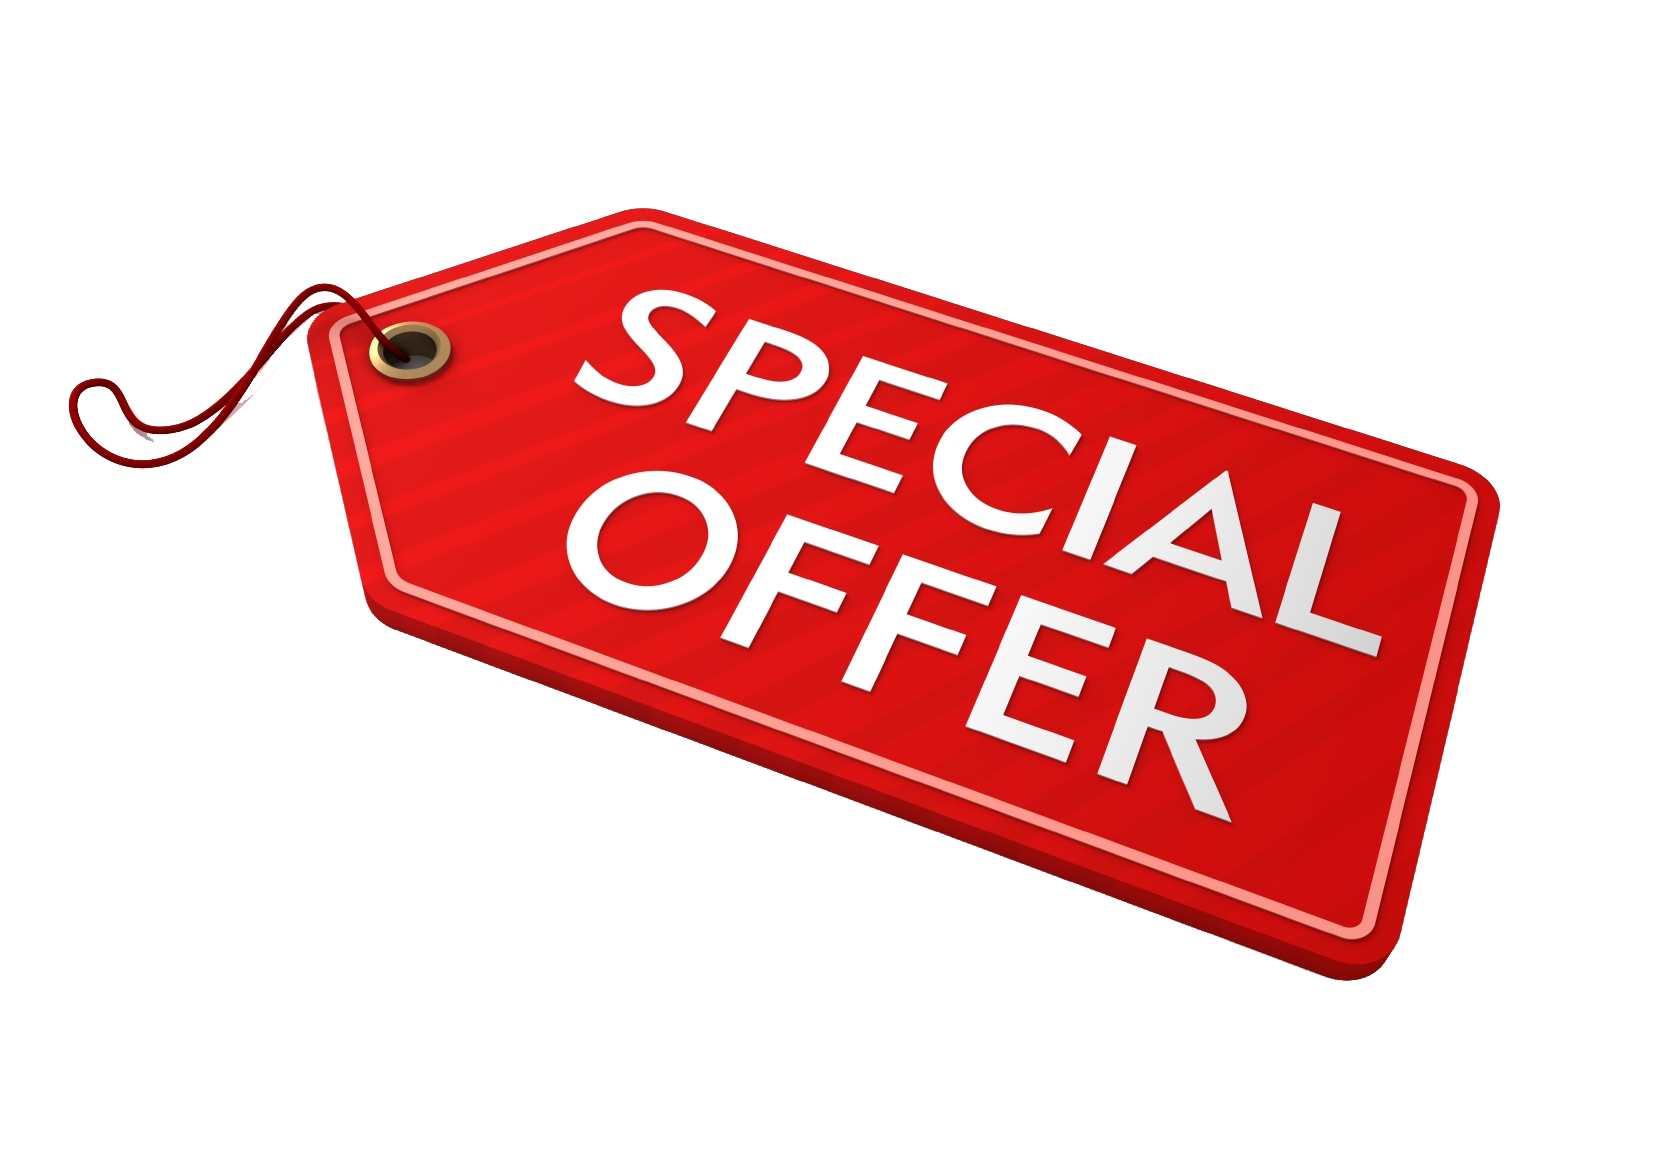 Special clipart special offer. Download png clip art